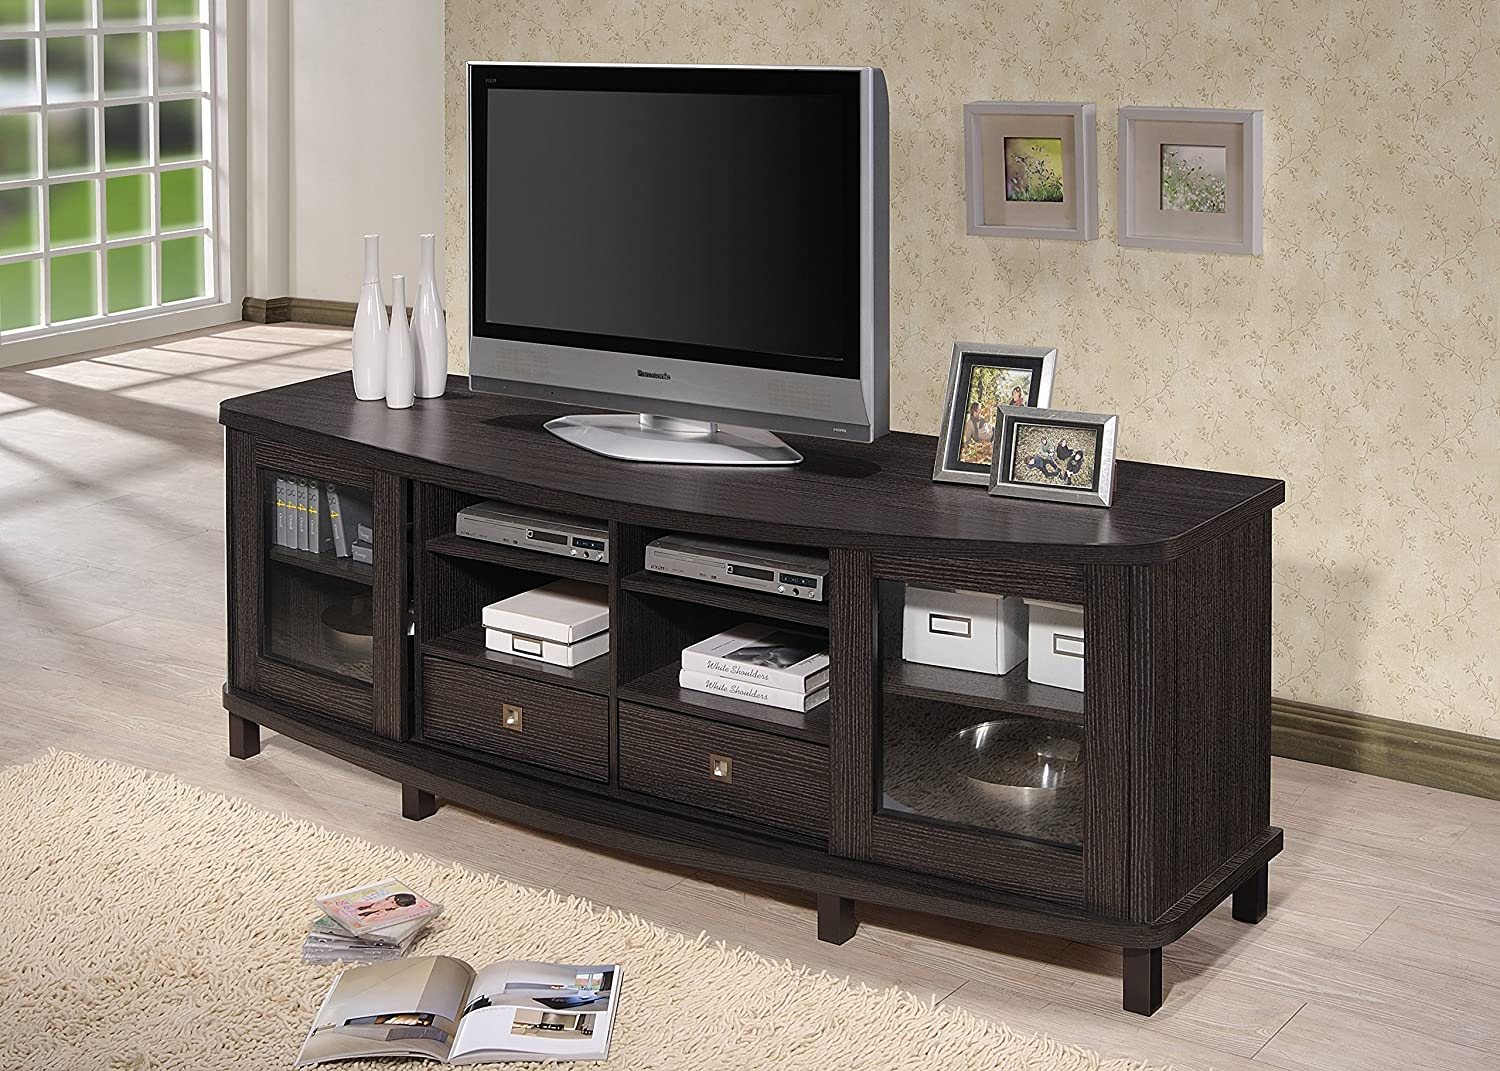 amazoncom wholesale interiors baxton studio walda wood tv cabinet with sliding doors and  drawers  dark brown kitchen  dining. amazoncom wholesale interiors baxton studio walda wood tv